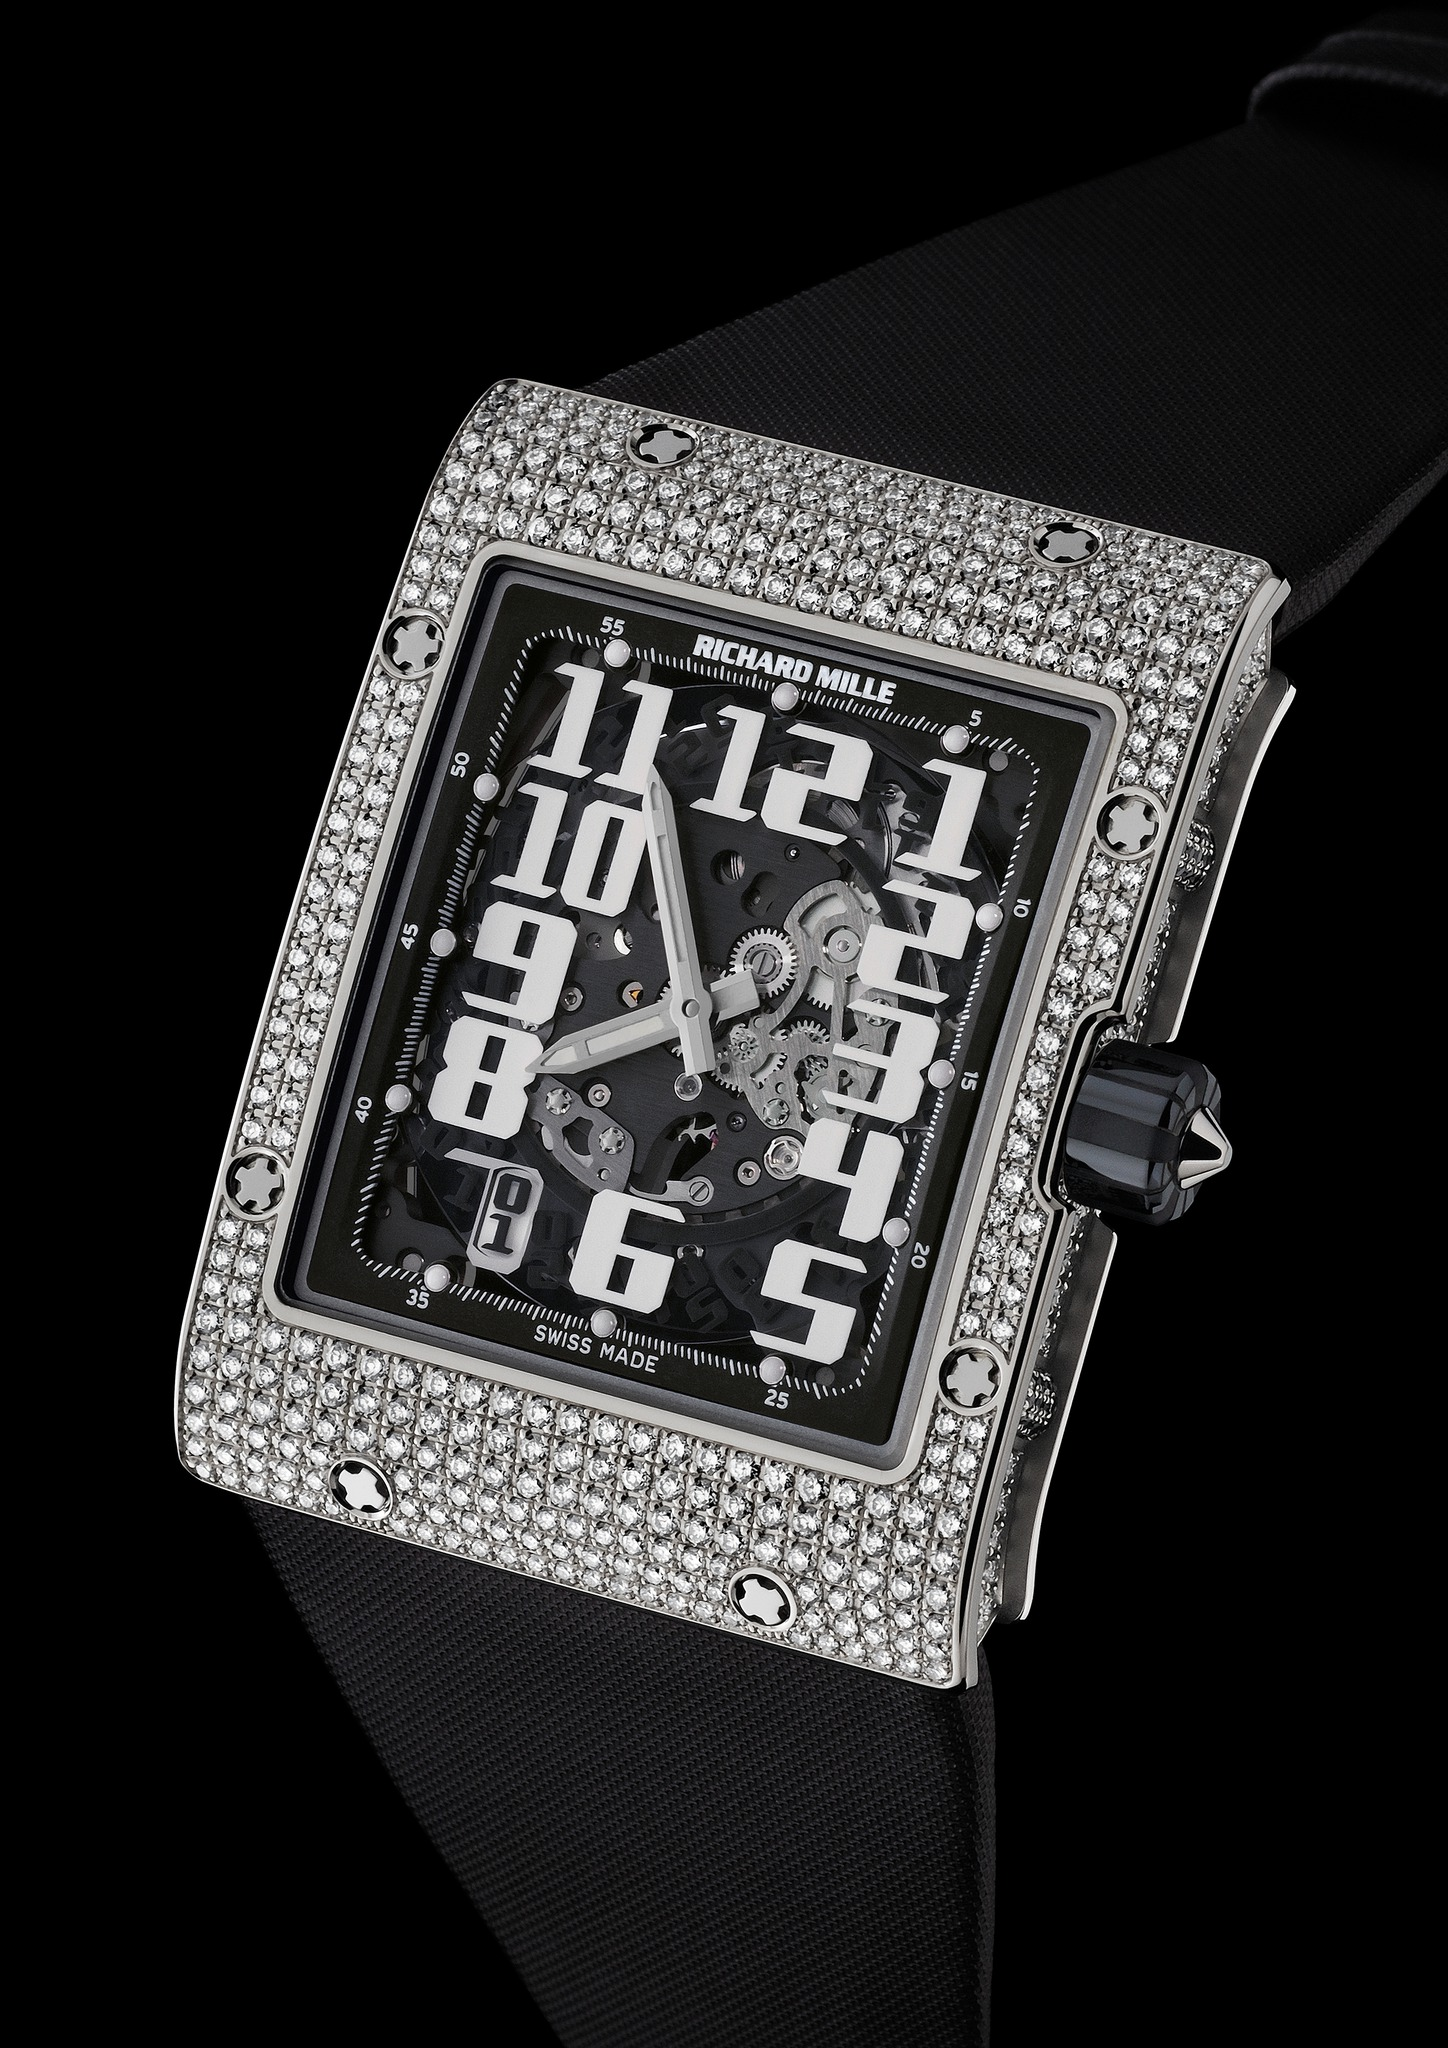 Replica Richard Mille RM 016 Automatic Diamonds White Gold Watch